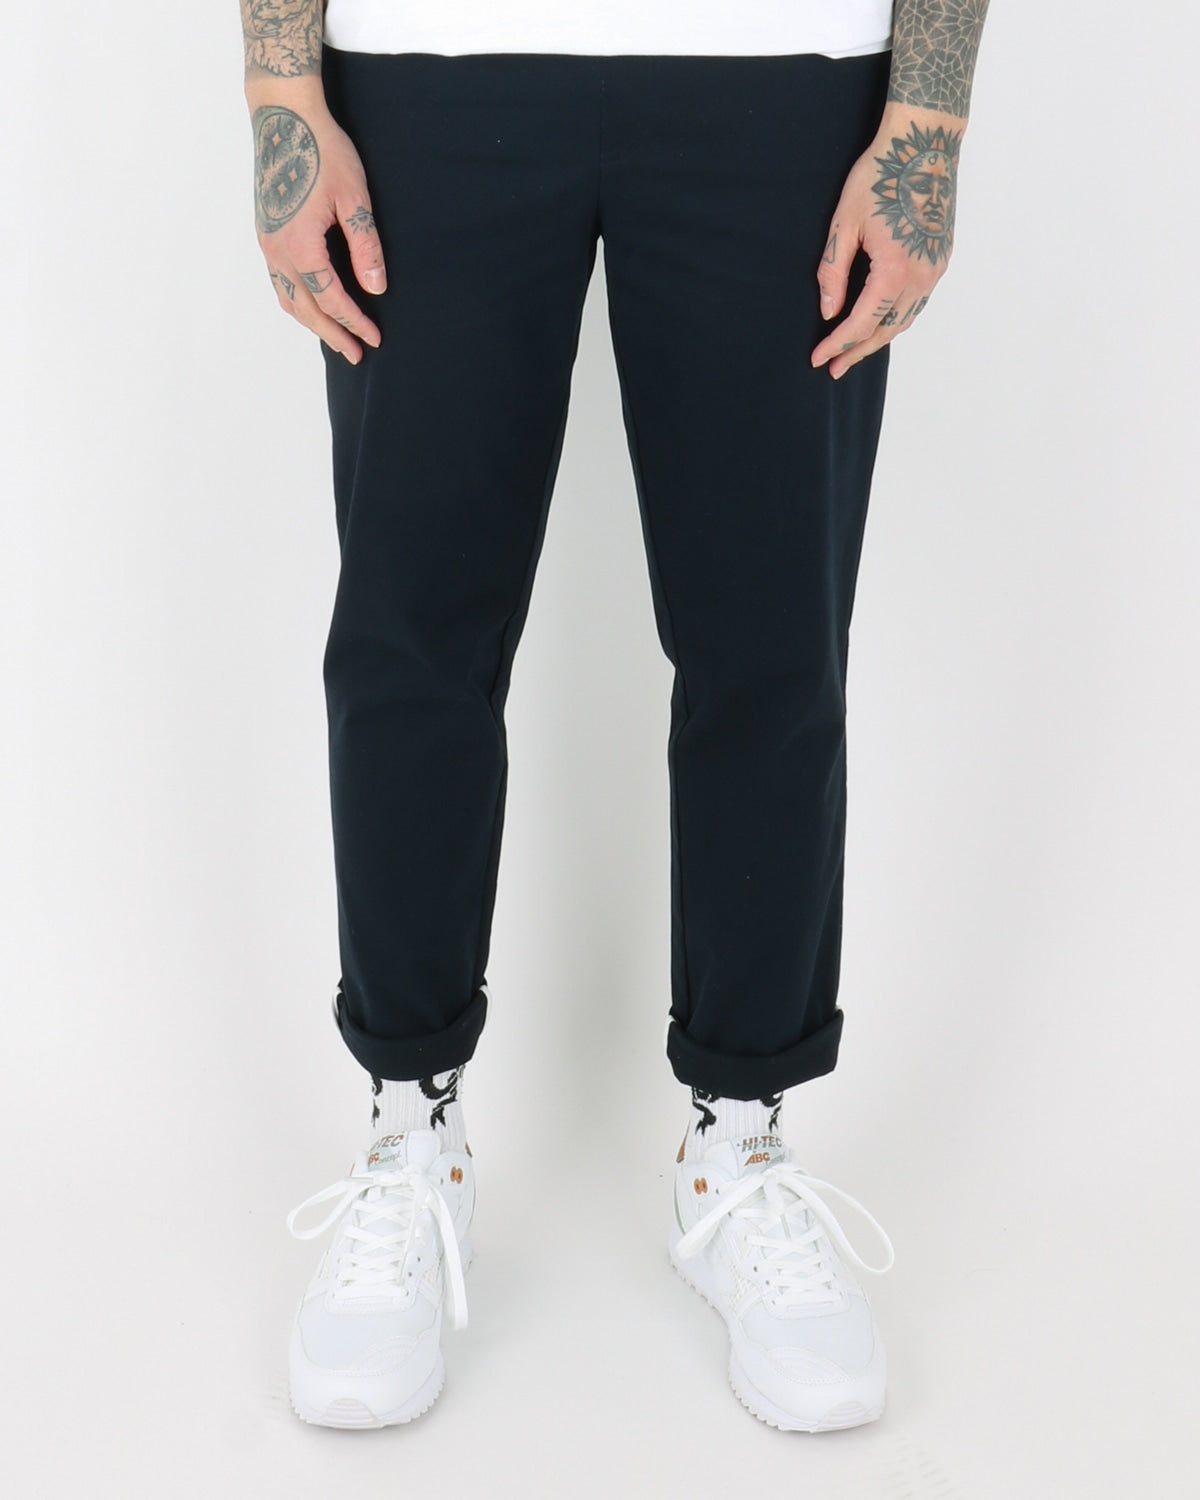 legends_hermosa pants_dark navy_view_1_3